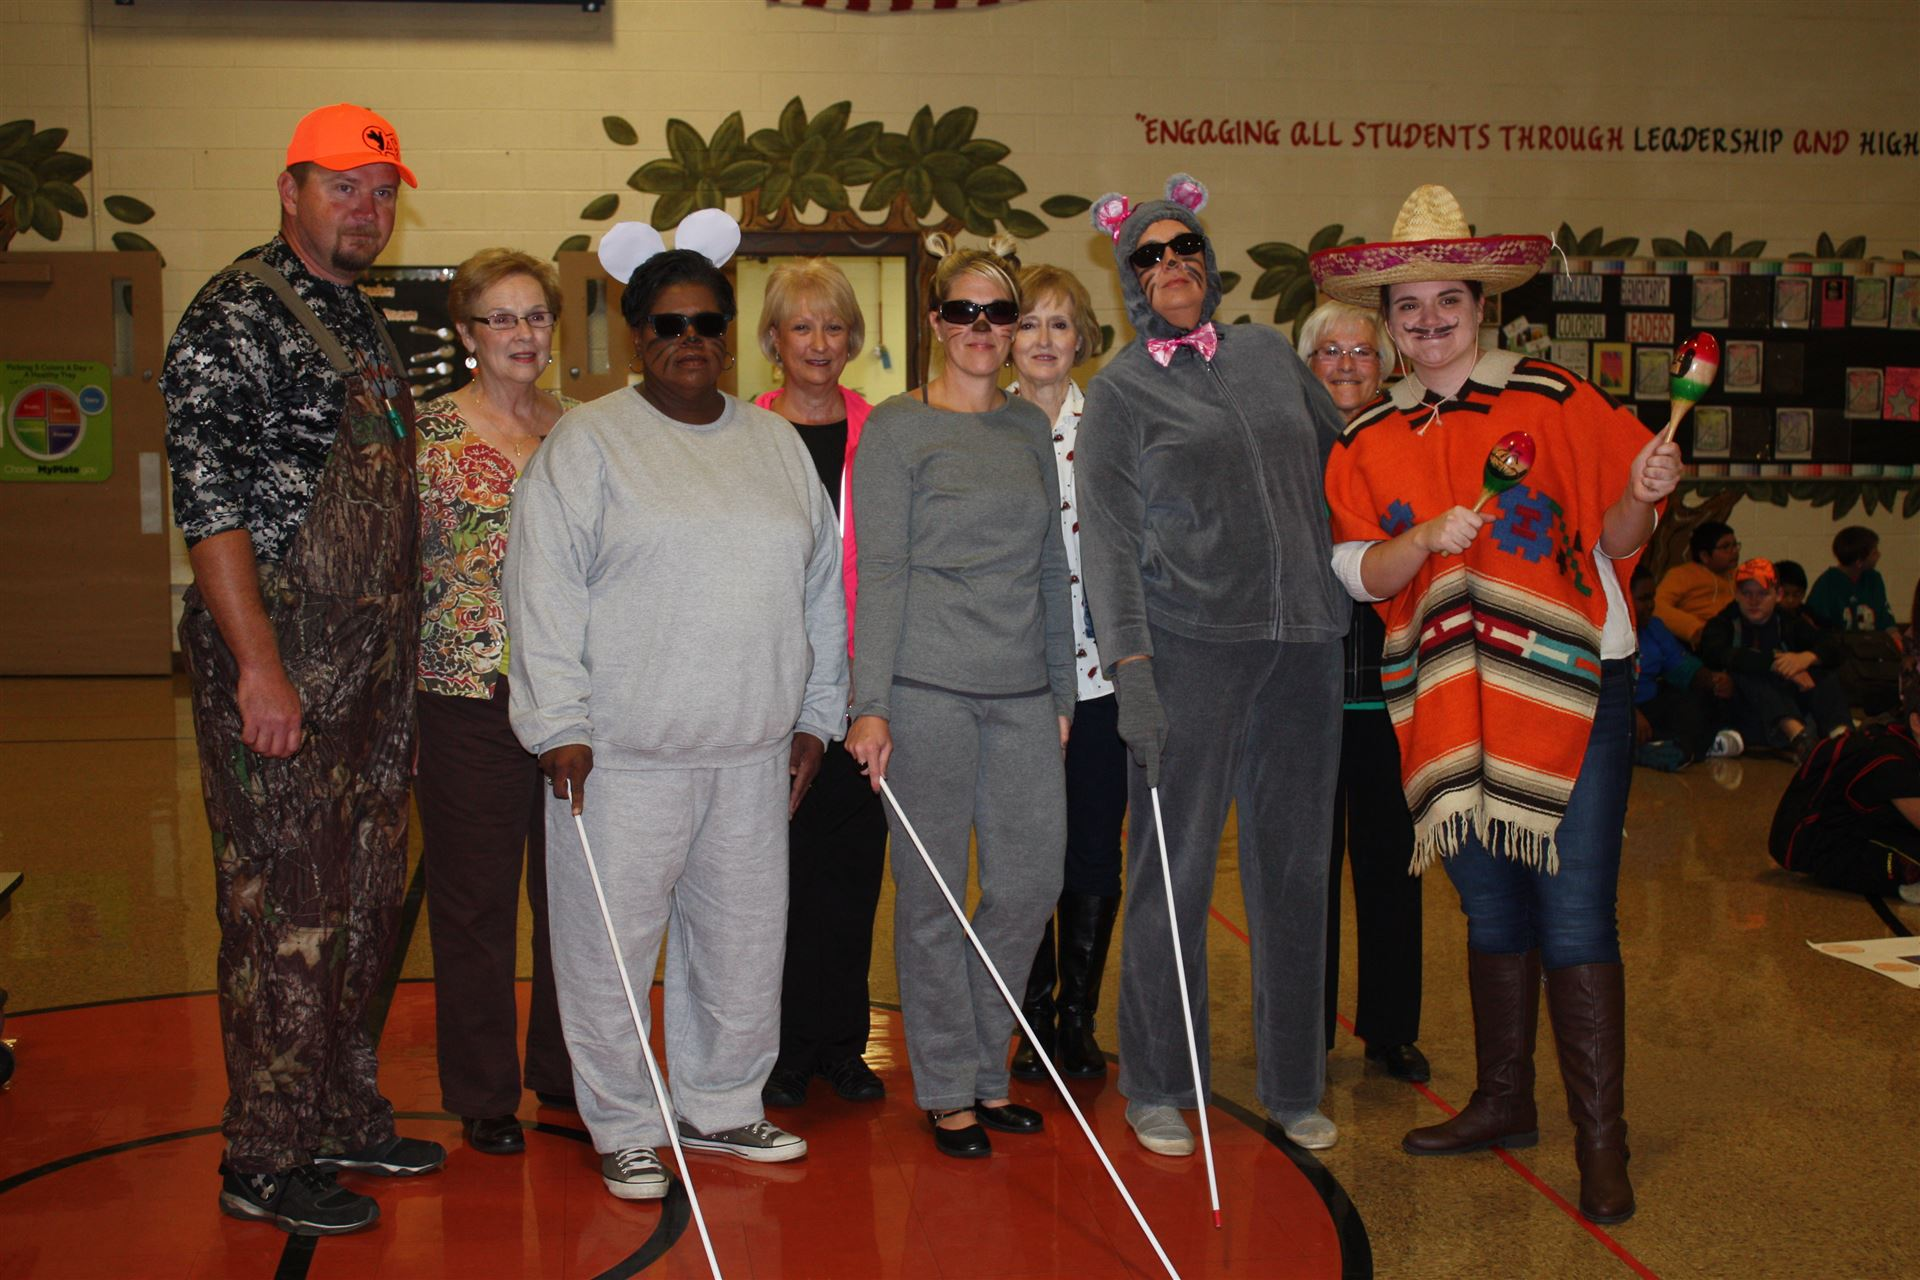 Faculty / Staff Halloween Dress Up Day 2014